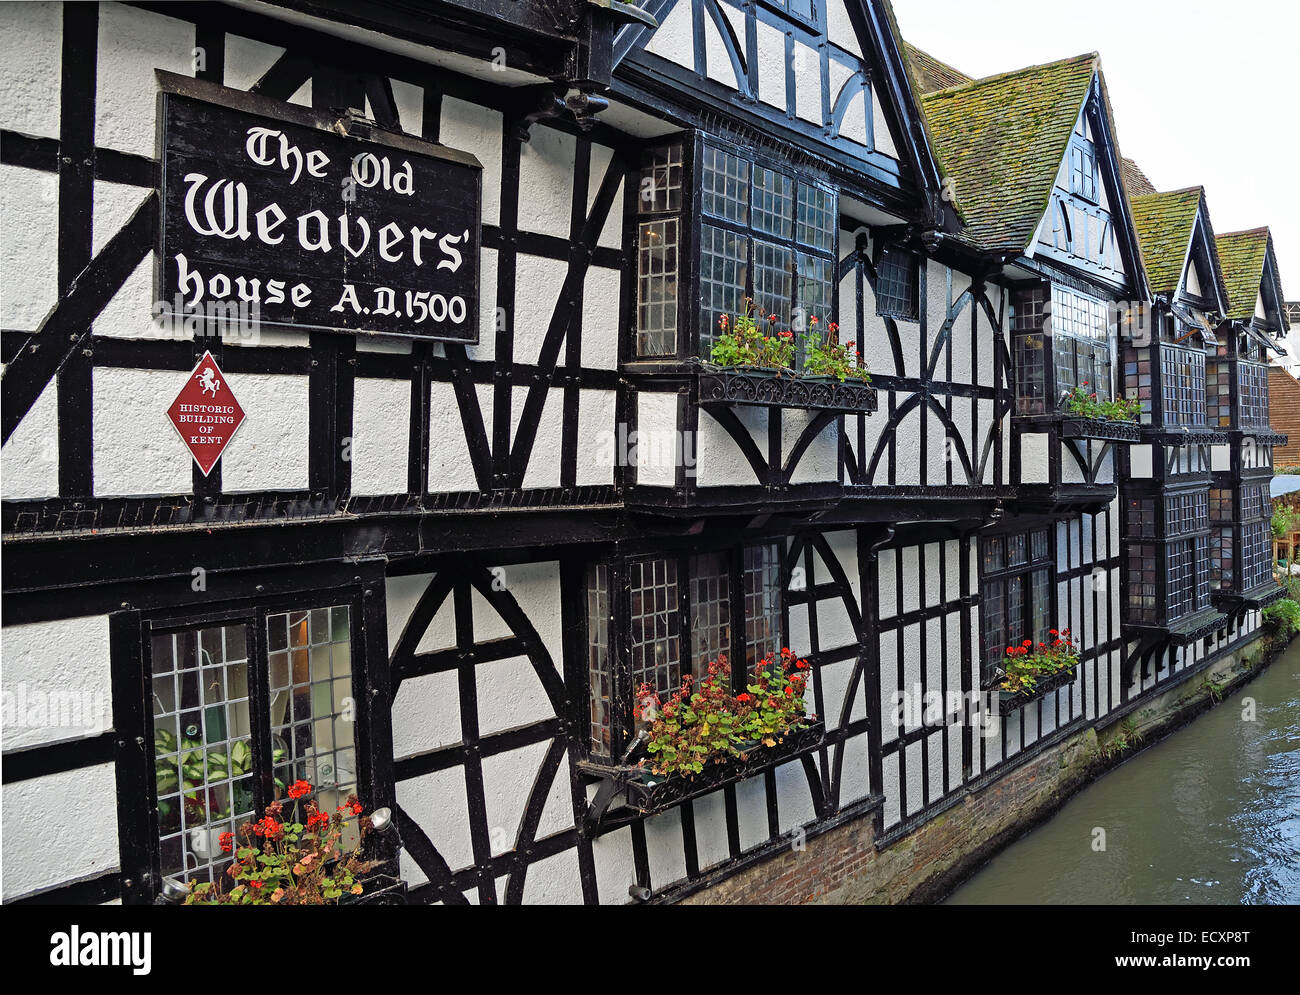 the old weavers